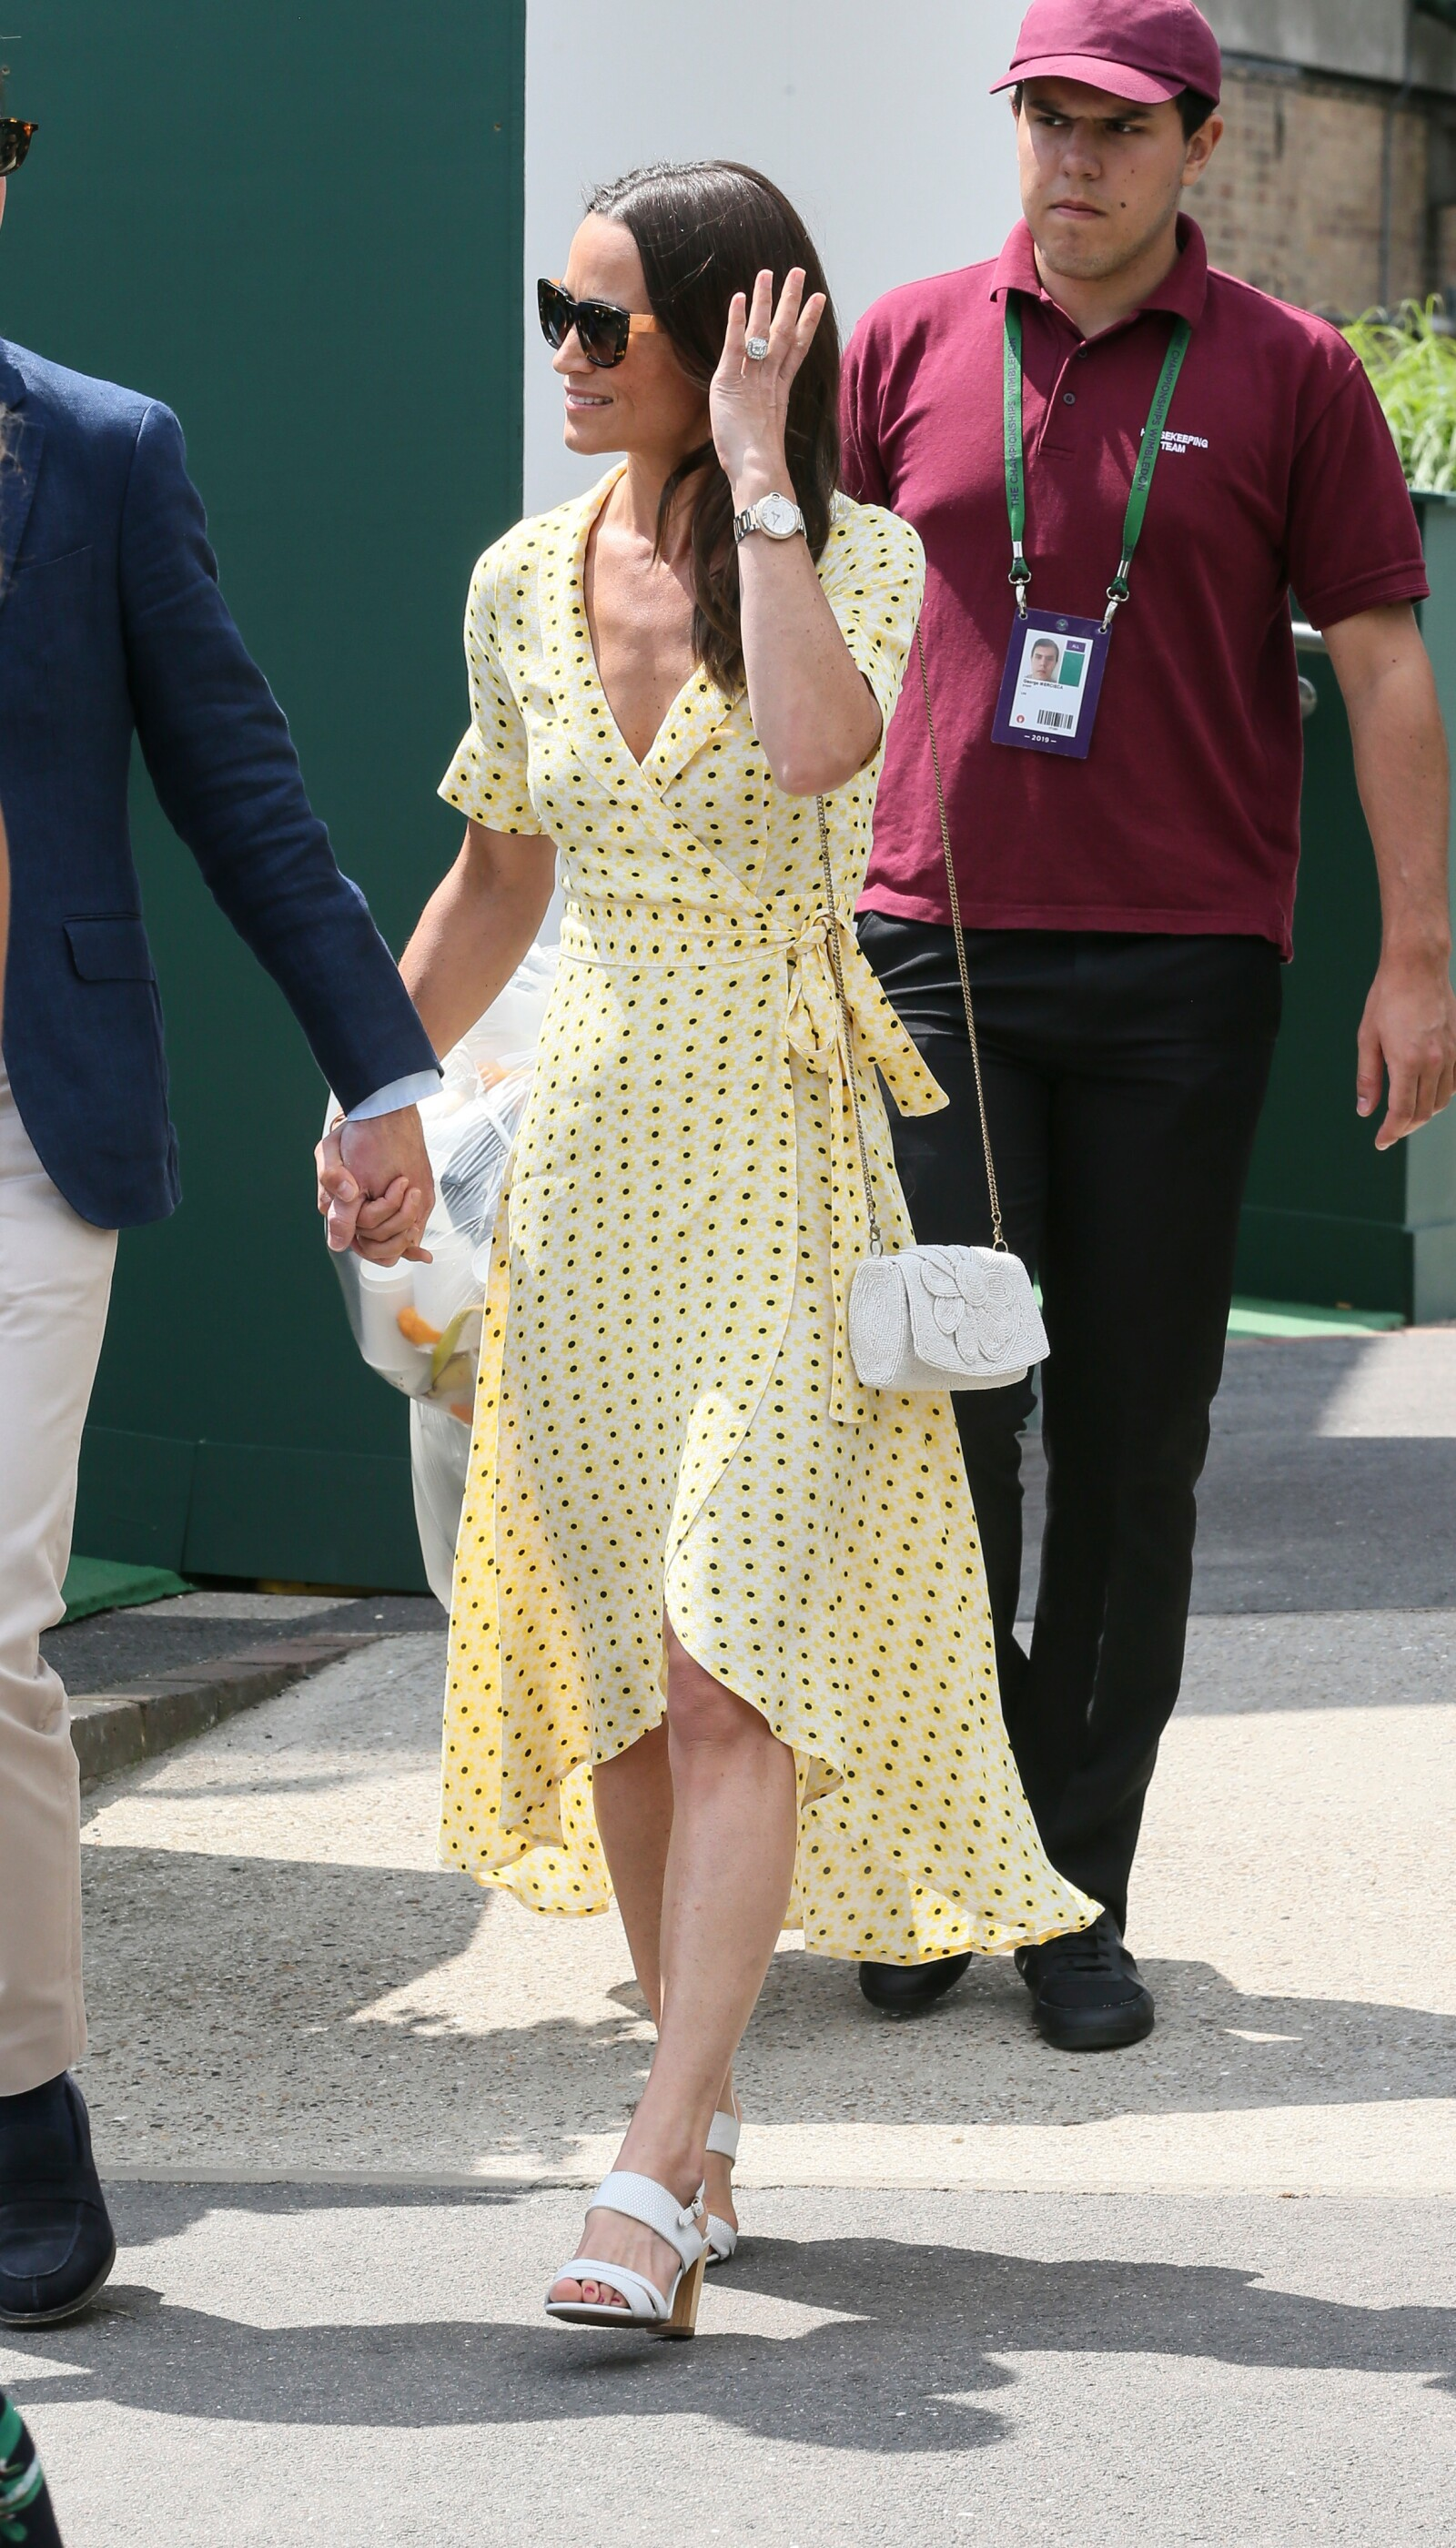 Celebrities arriving at Wimbledon, London, England, 12 July 2019